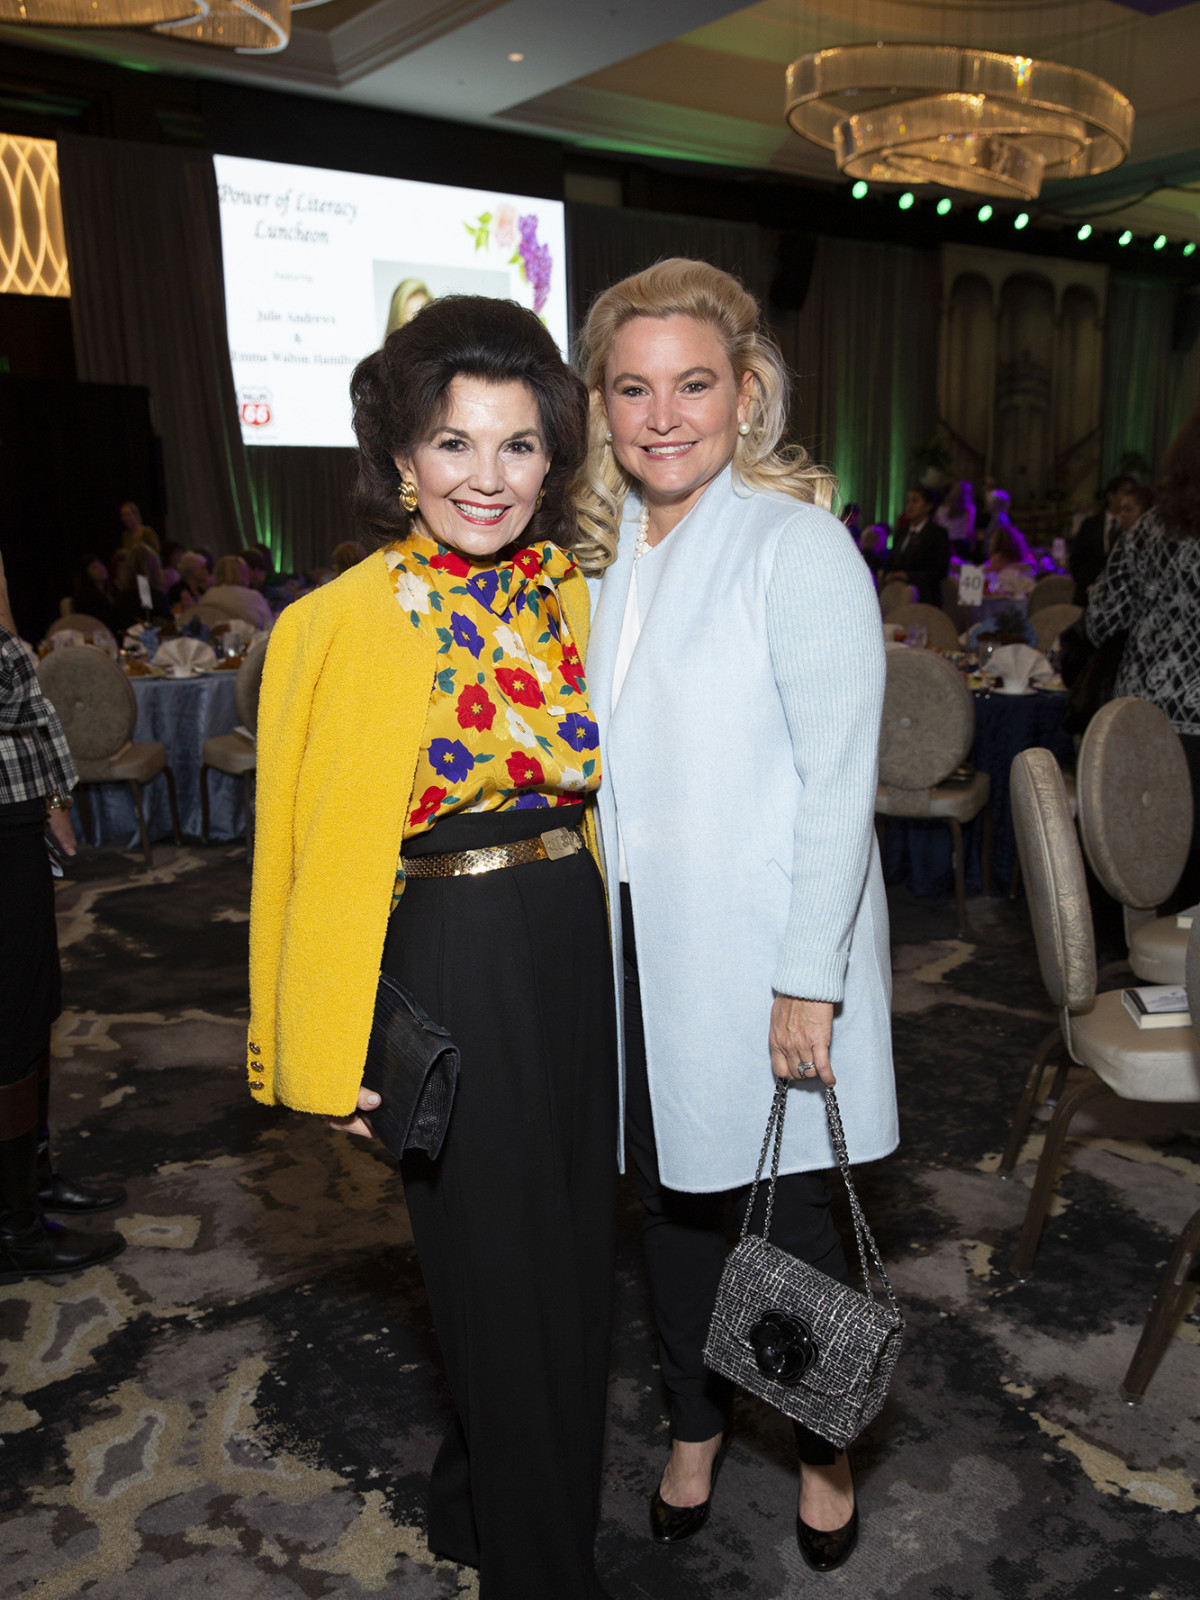 Barbara Bush Power of Literacy Luncheon Julie Andrews 2019  Linda McReynolds  and Merritt Marinelli